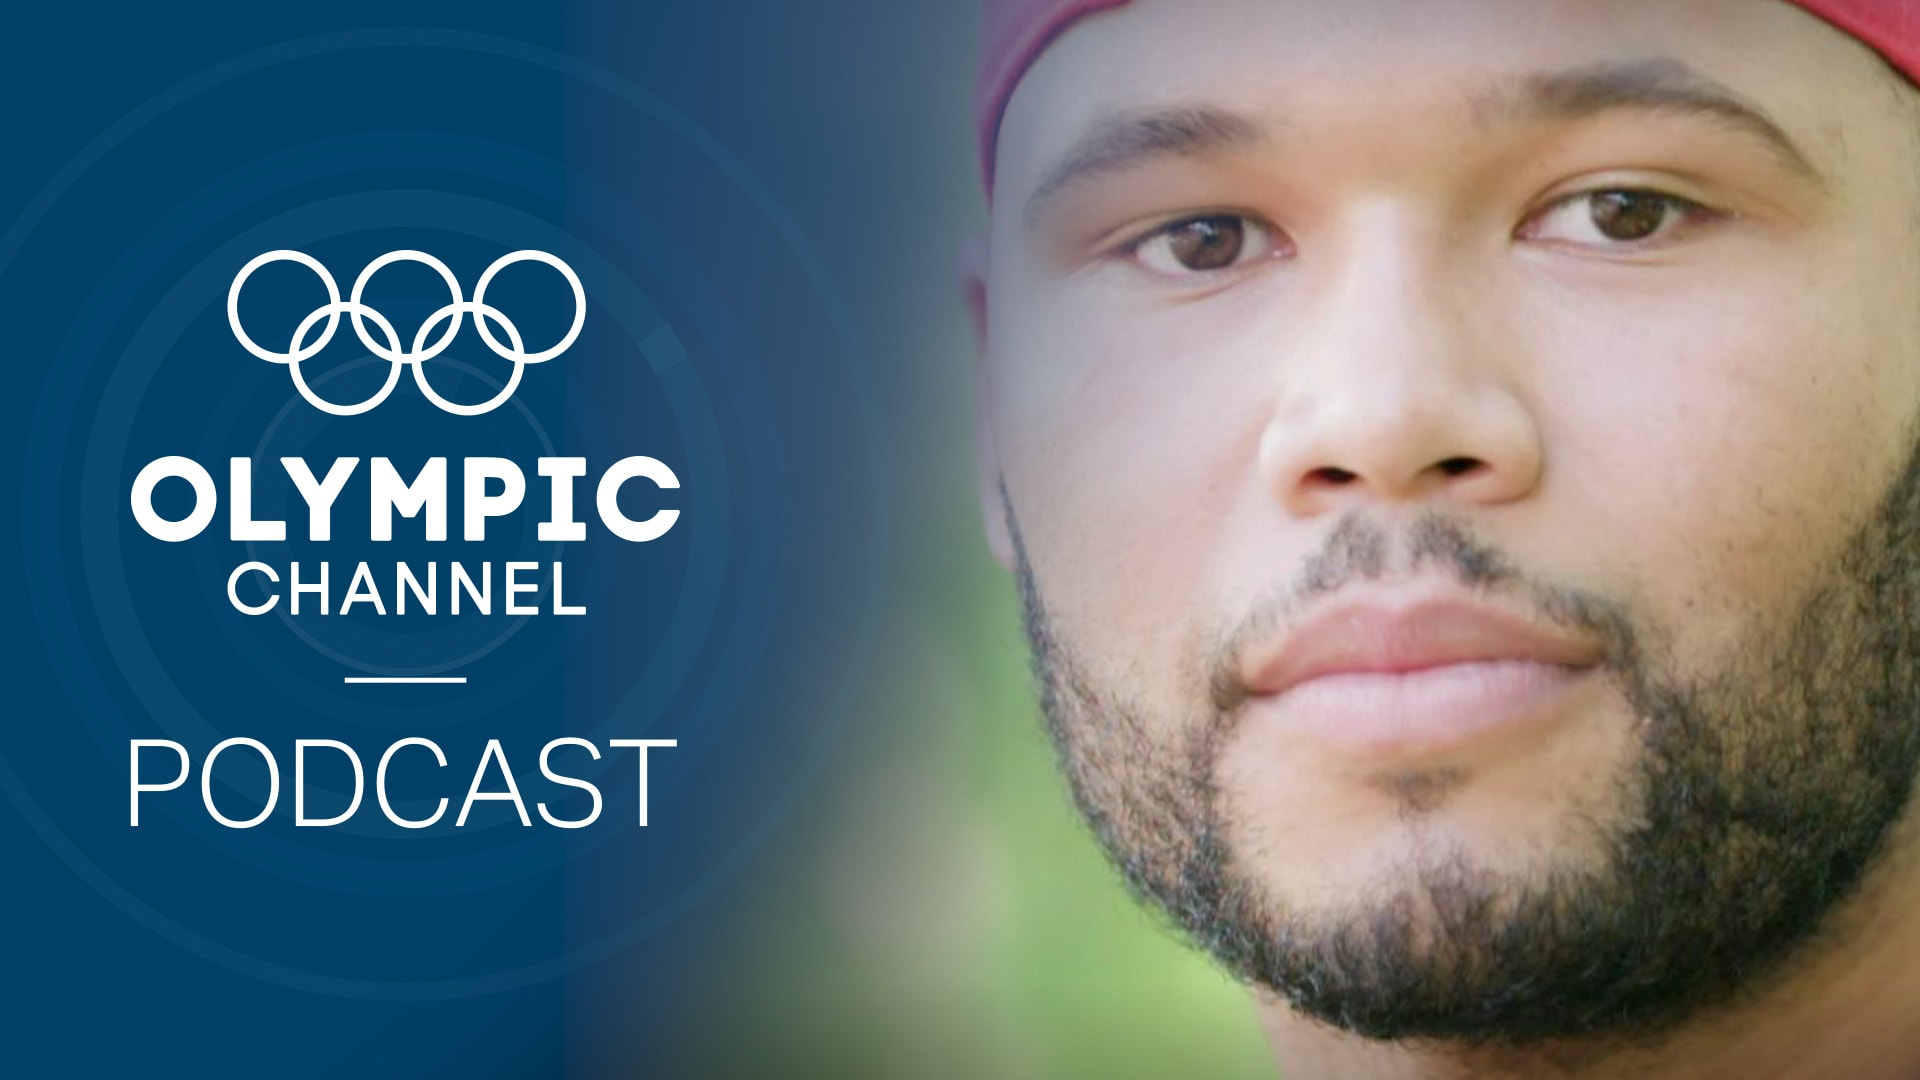 Olympic Channel Podcast: Ways to Listen | Olympic Channel